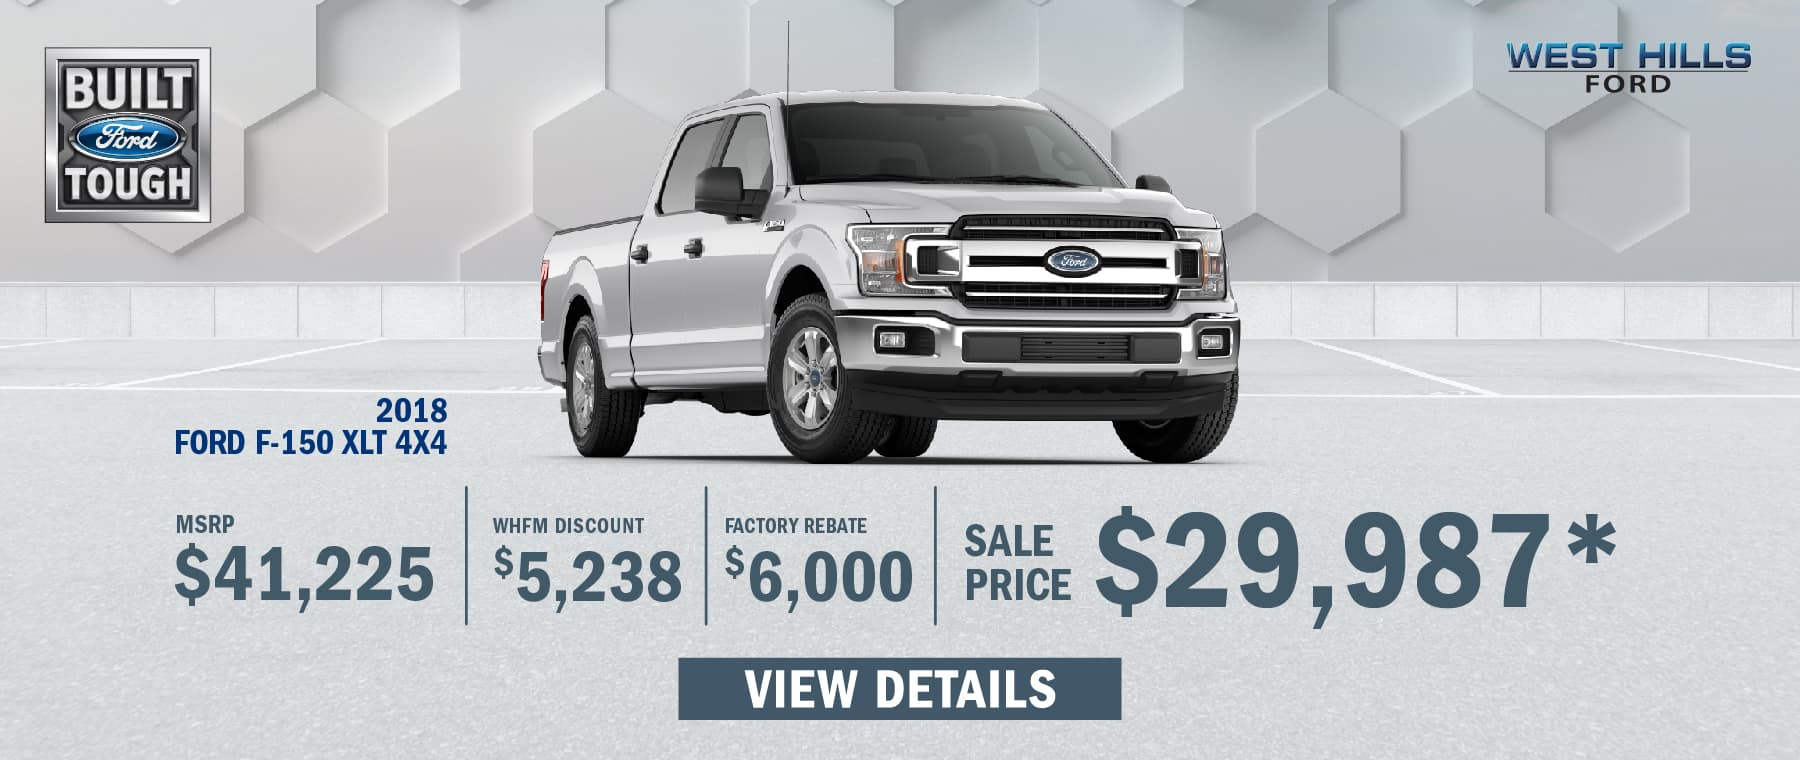 2018 Ford F-150 XLT 4X4  (Featured Vehicle)  MSRP: $41,225 WHFM Discount: $5,238 Factory Rebate: $6,000 Sale Price: $29,987   *Offer valid on 2018 Ford F-150 XLT 4X4. VIN: 1FTEX1EB4JKG11771. Subject to credit approval. WHFM Discount: $5,238. Factory Rebate: $6,000, Sale Price: $29,987, not all will qualify. Based on approval of program ID 13374, 13388, 36914. Down payment and monthly payment may vary. Excludes state and local taxes, tags, registration, title, insurance and dealer charges. See dealer or go to ford.com for qualifications and complete details. A negotiable dealer documentary service fee of up to $150 may be added to the sale price or capitalized cost. Offer expires 1/31/19.